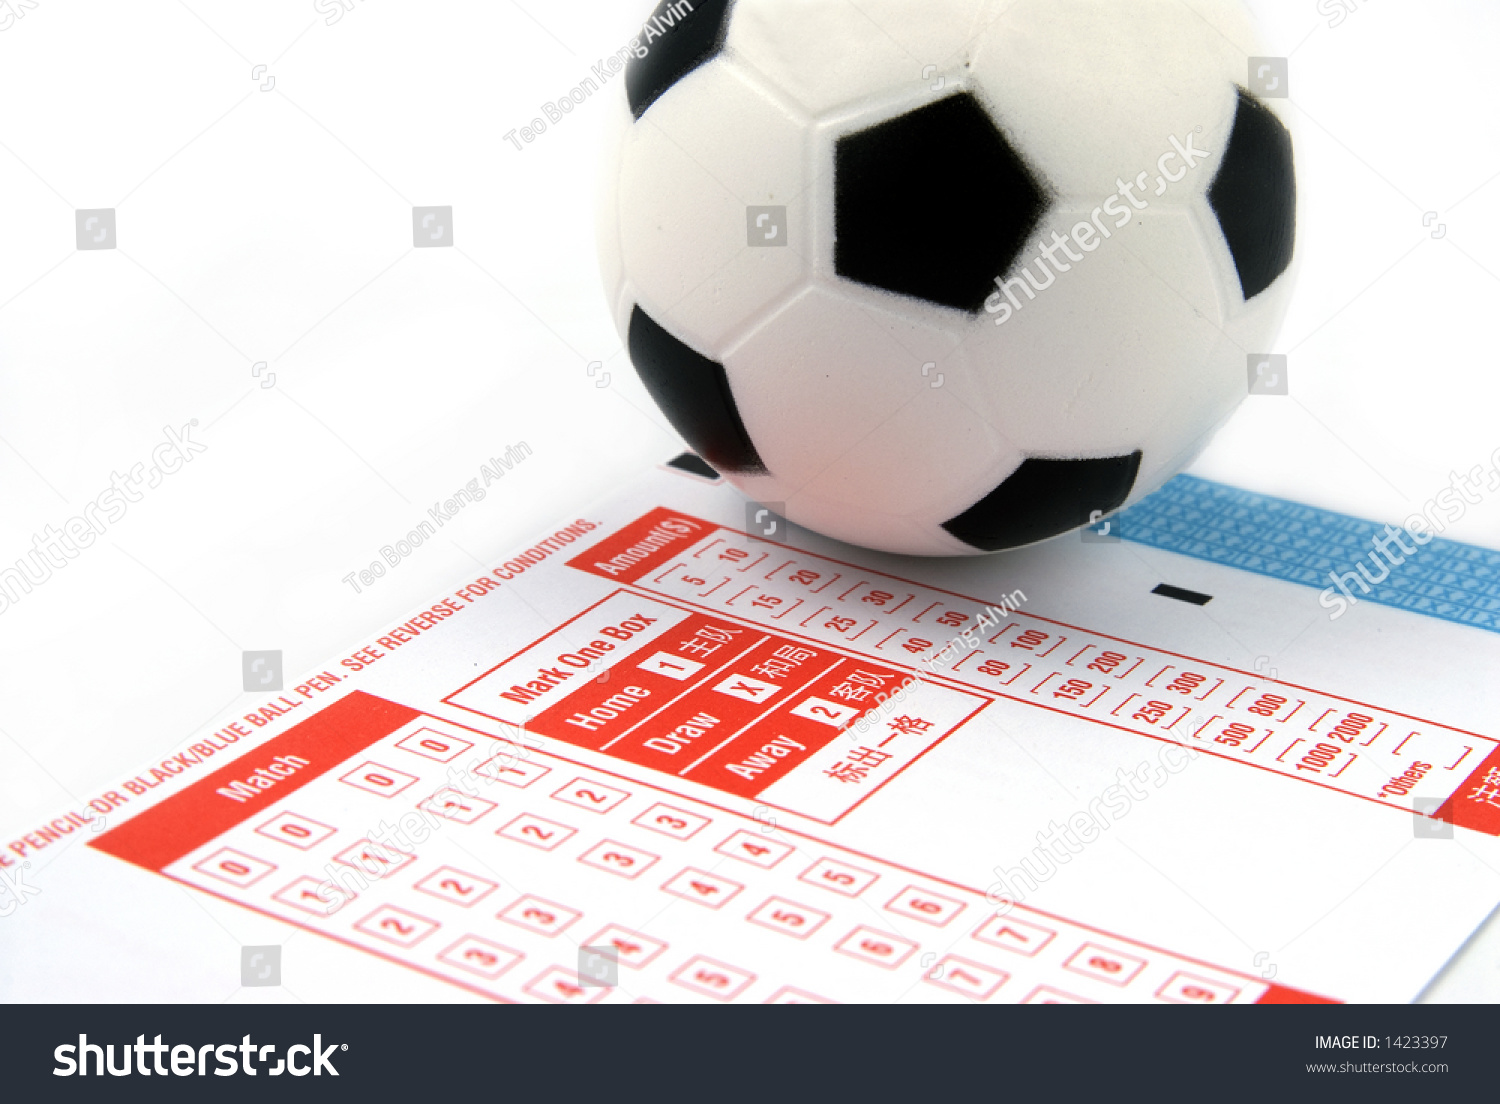 football betting slips